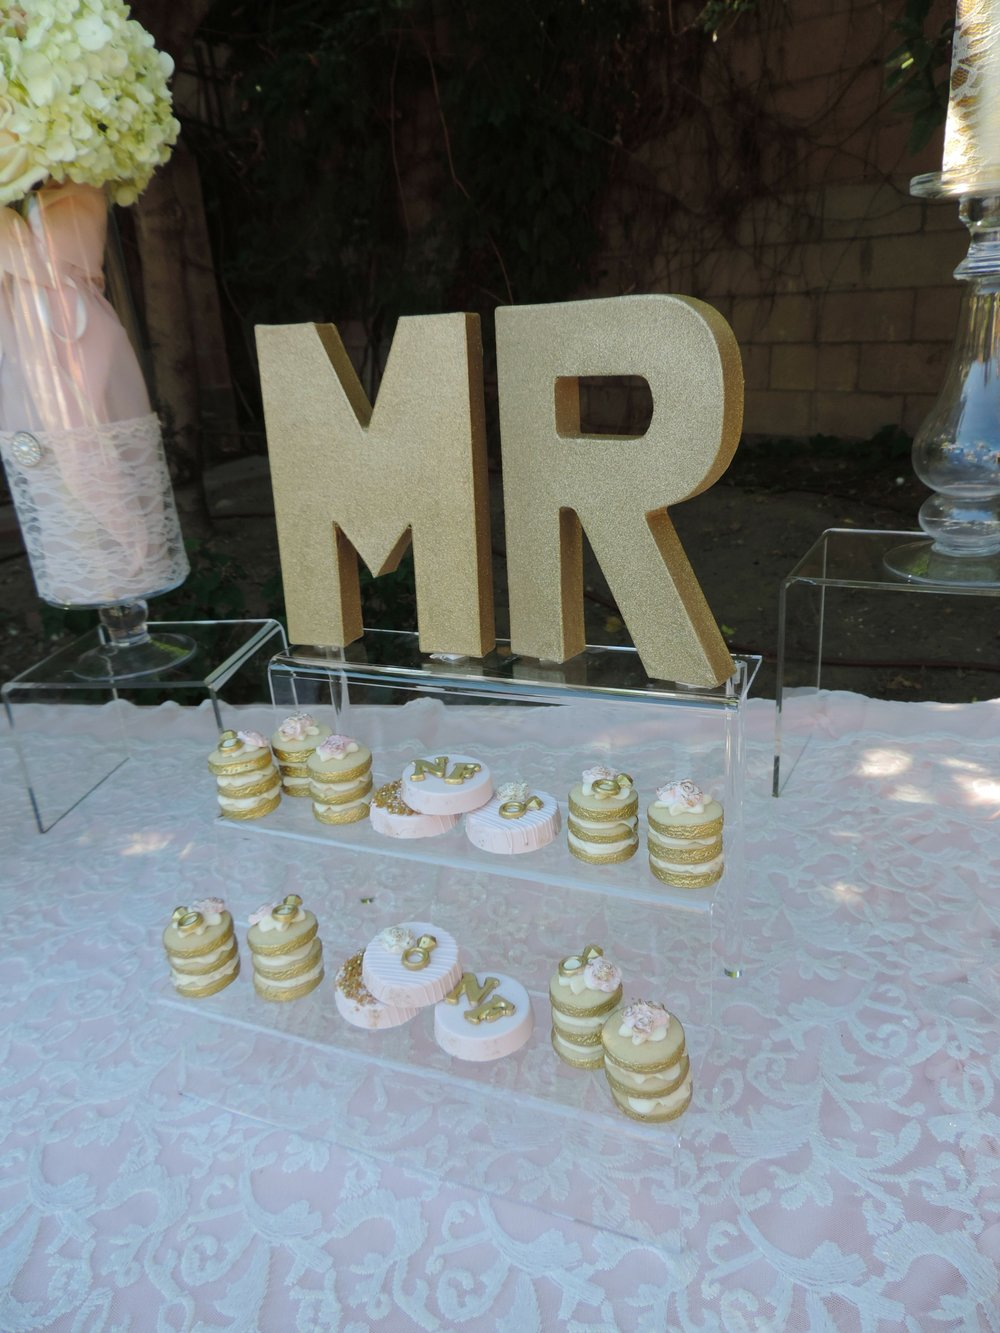 Wedding Dessert Ideas-Garden Wedding-backyard wedding-wedding ideas-spring wedding-summer wedding-wedding ideas-desserts-blush wedding-www.SugarPartiesLA.com.jpg